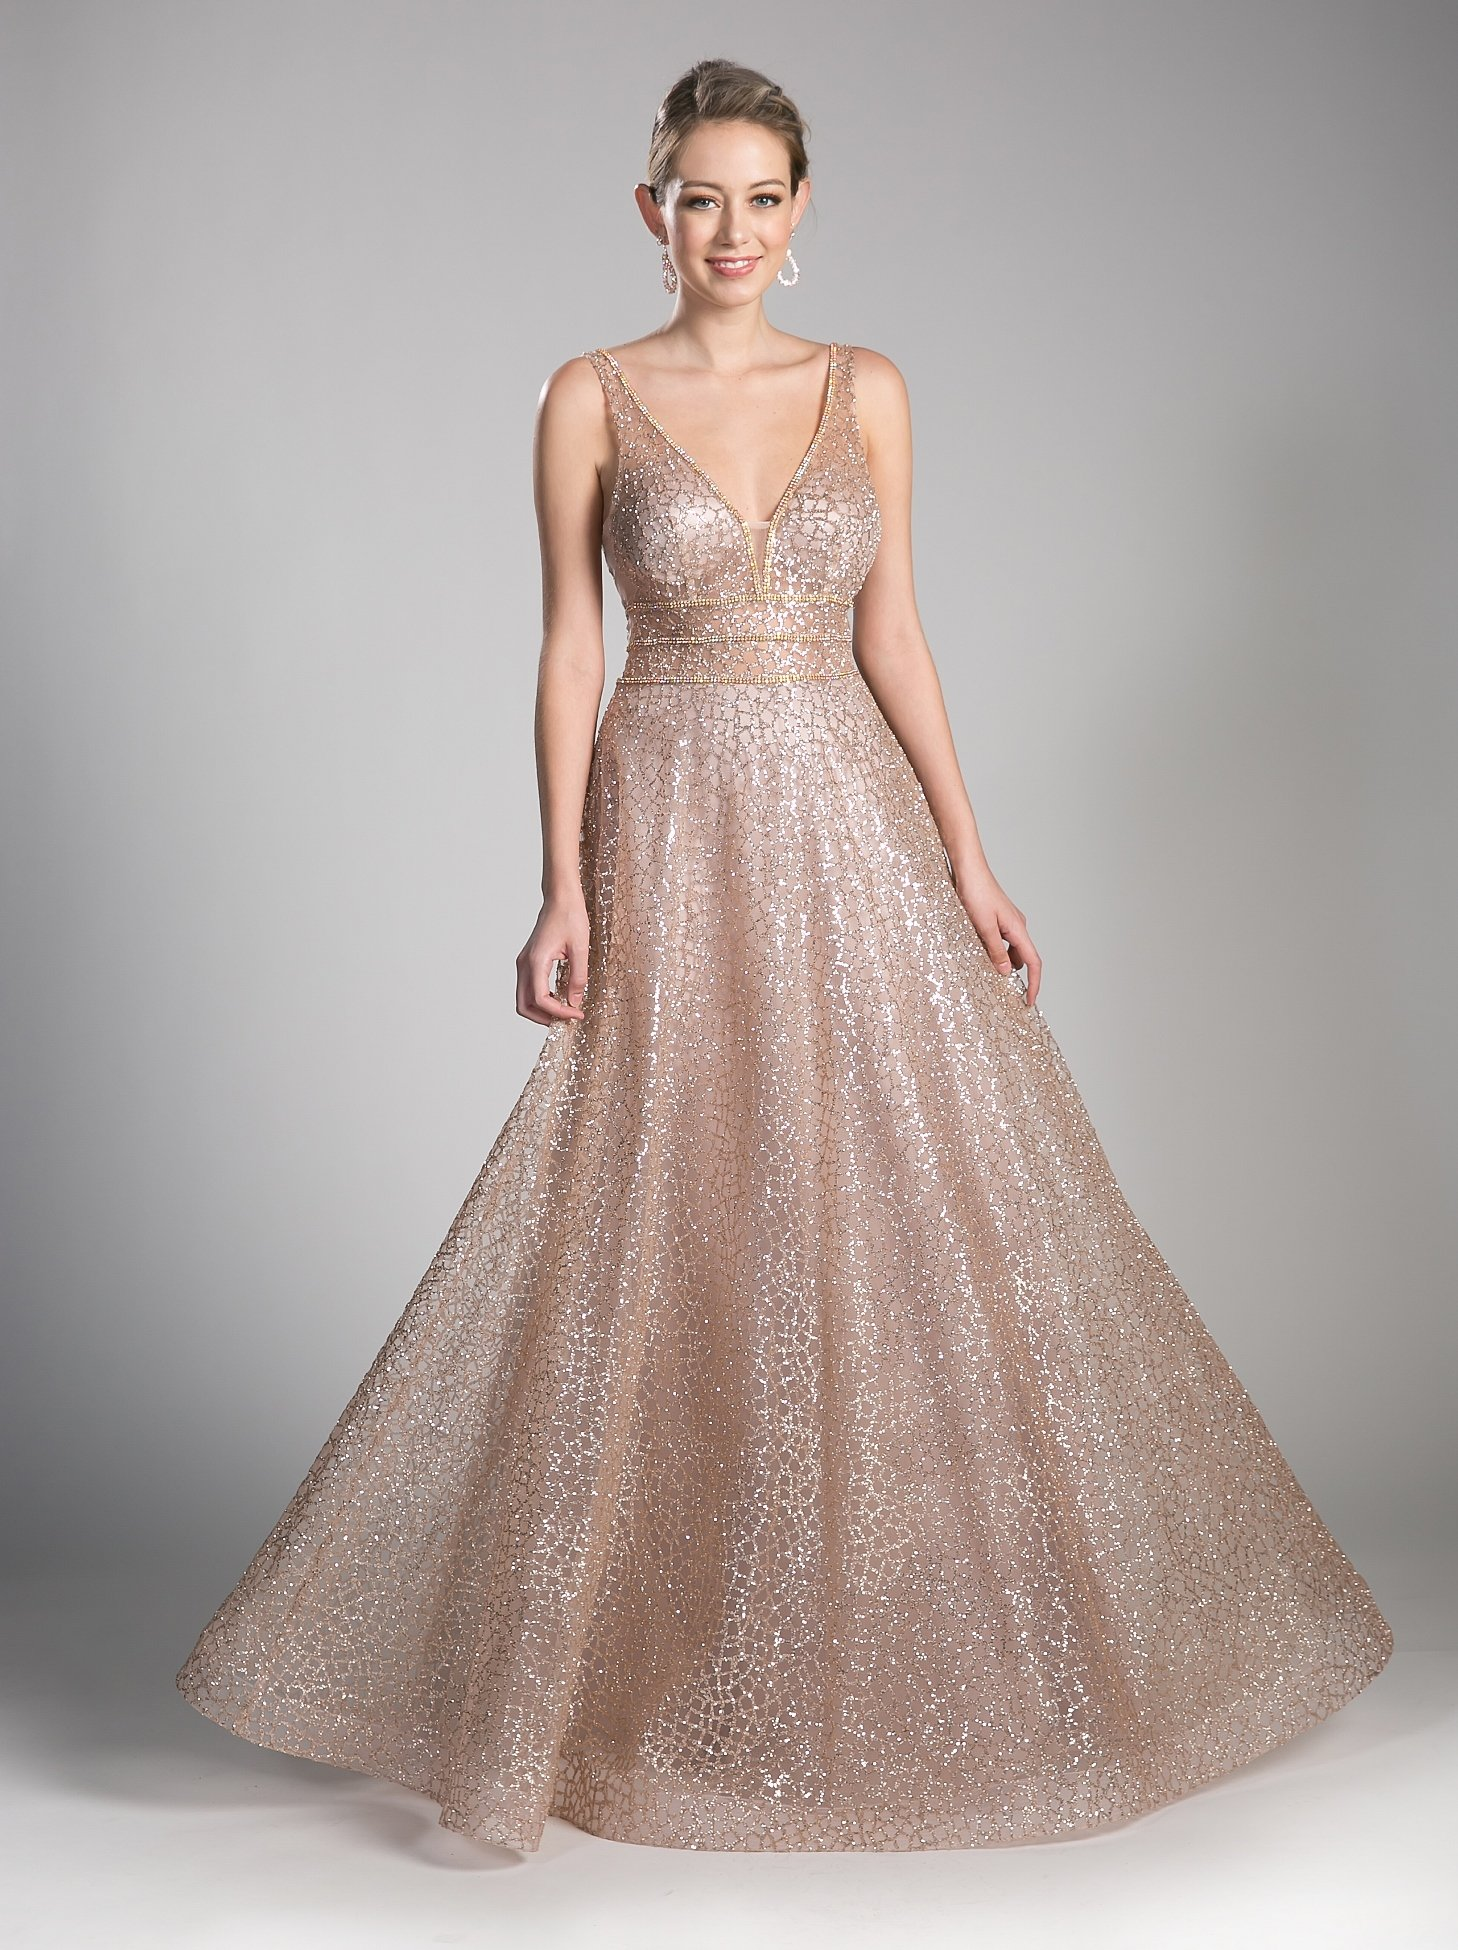 ad8ac71c339 Long Open Back A-line Glitter Dress by Cinderella Divine CJ256 ...